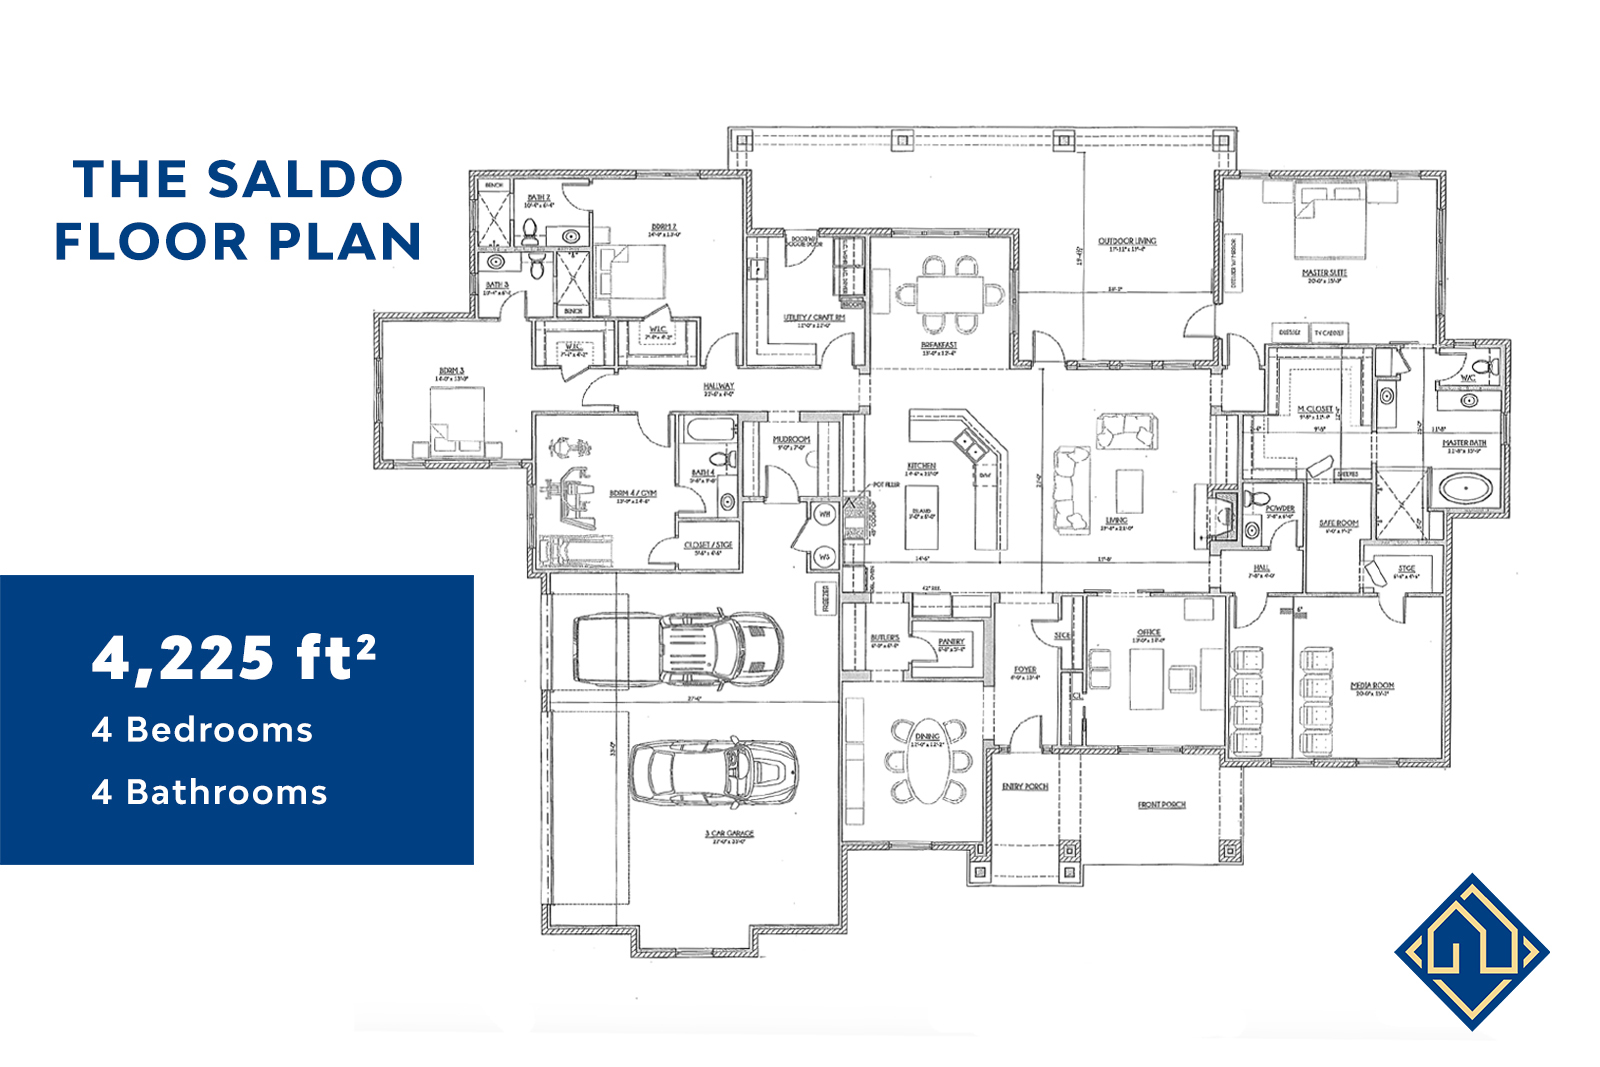 4 Bedroom 4 Bathroom Floor Plan with Dimensions